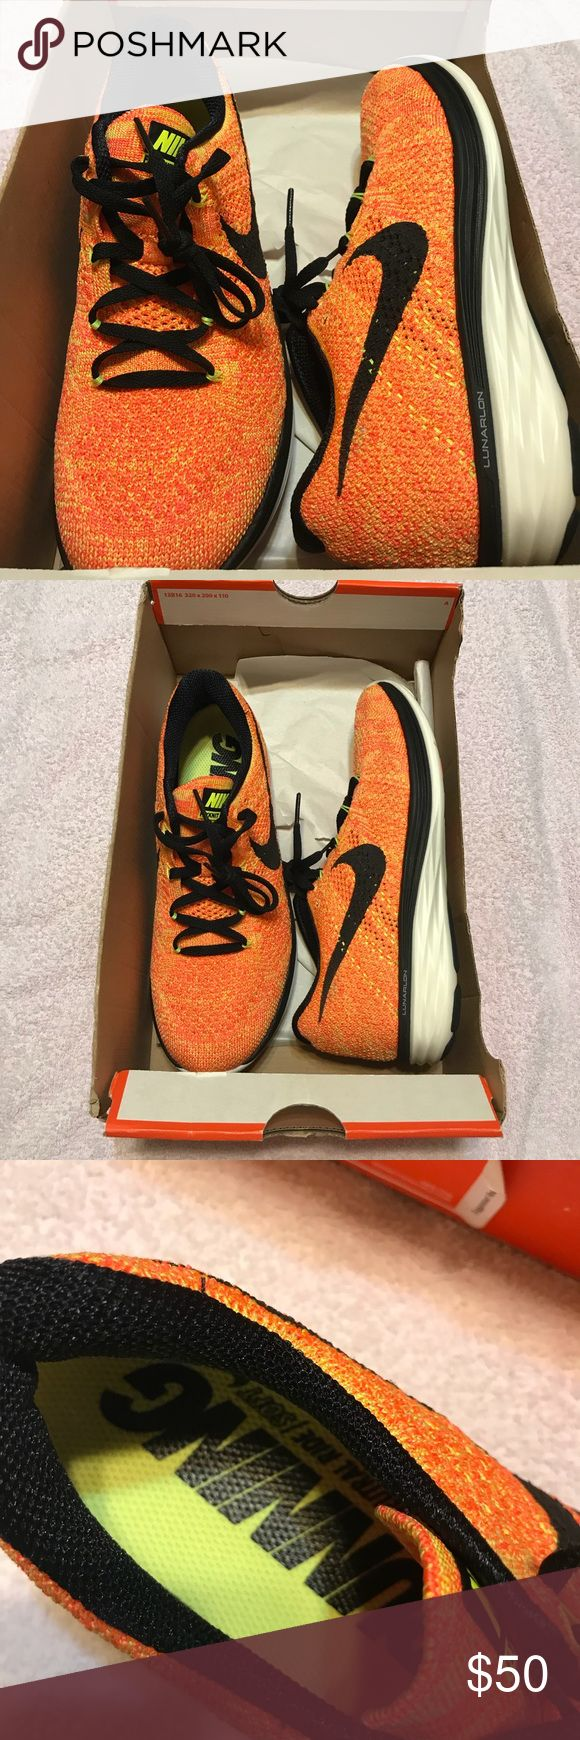 NEW! Rare NIKE Flyknit Lunar 3 Orange Shoes Sz 7.5 Authentic NIKE Flyknit Lunar in rare orange sherbet colorway. Size 7.5. Retail $150. New in box but box top is missing. Never worn never tried on (took home wrong size from trip out of state). Please ask all questions prior to purchase. No trades, lowball offers will be ignored. Thanks for looking! Nike Shoes Athletic Shoes